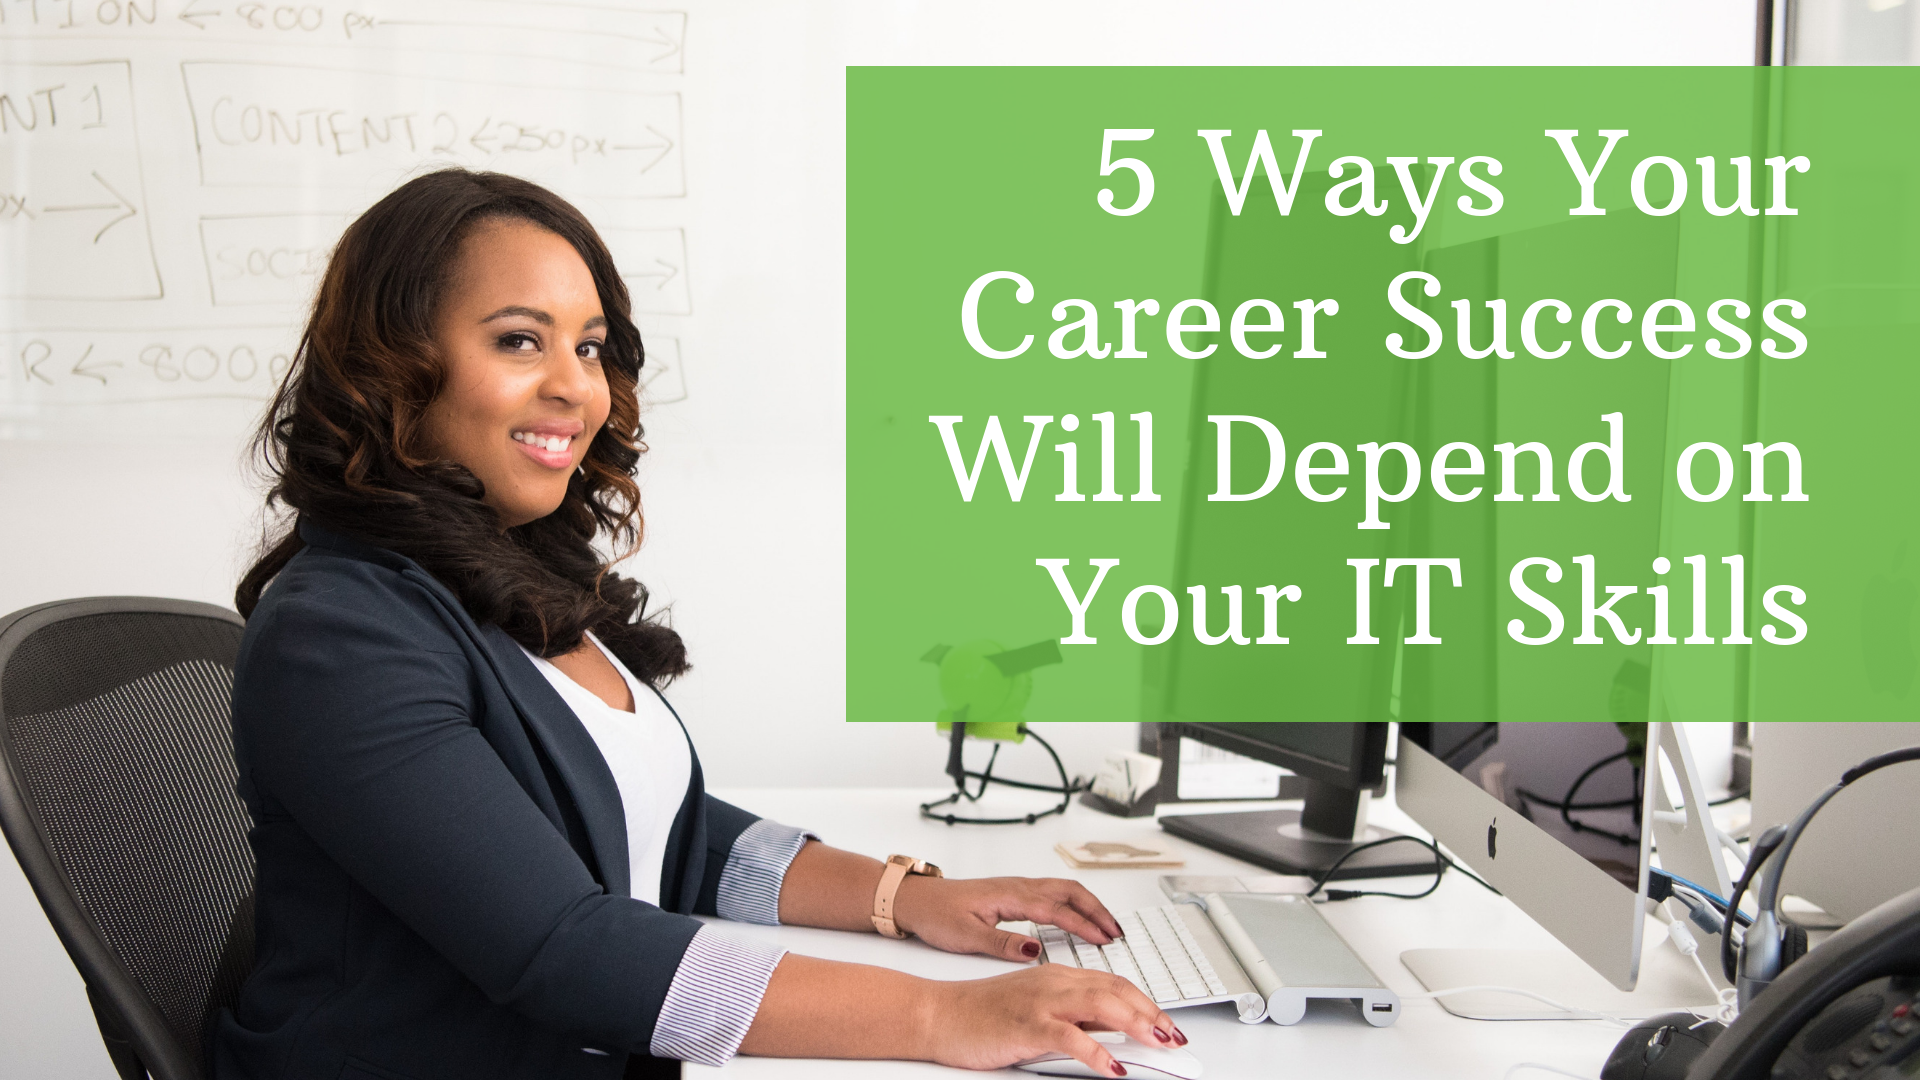 5 Ways Your Career Success Will Depend on Your IT Skills